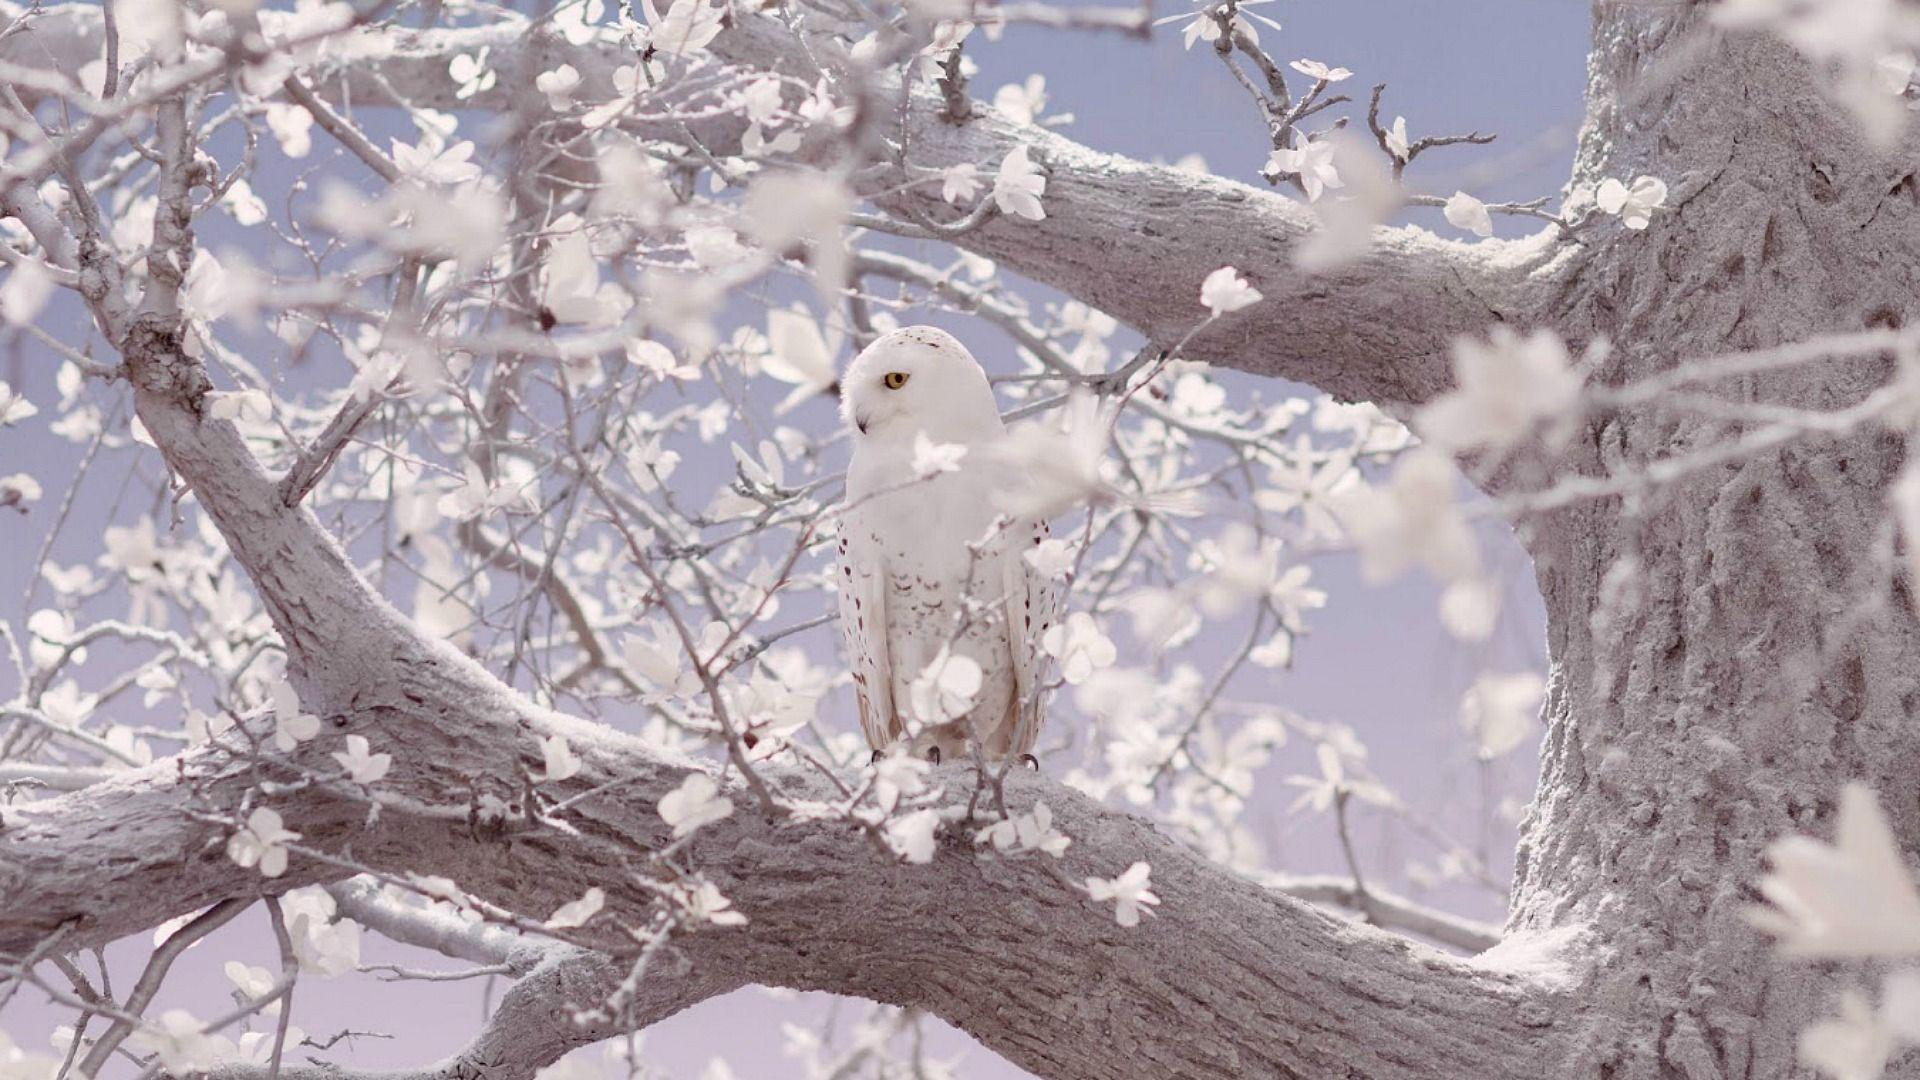 white owl high quality wallpapers hd desktop wallpapers amazing ...